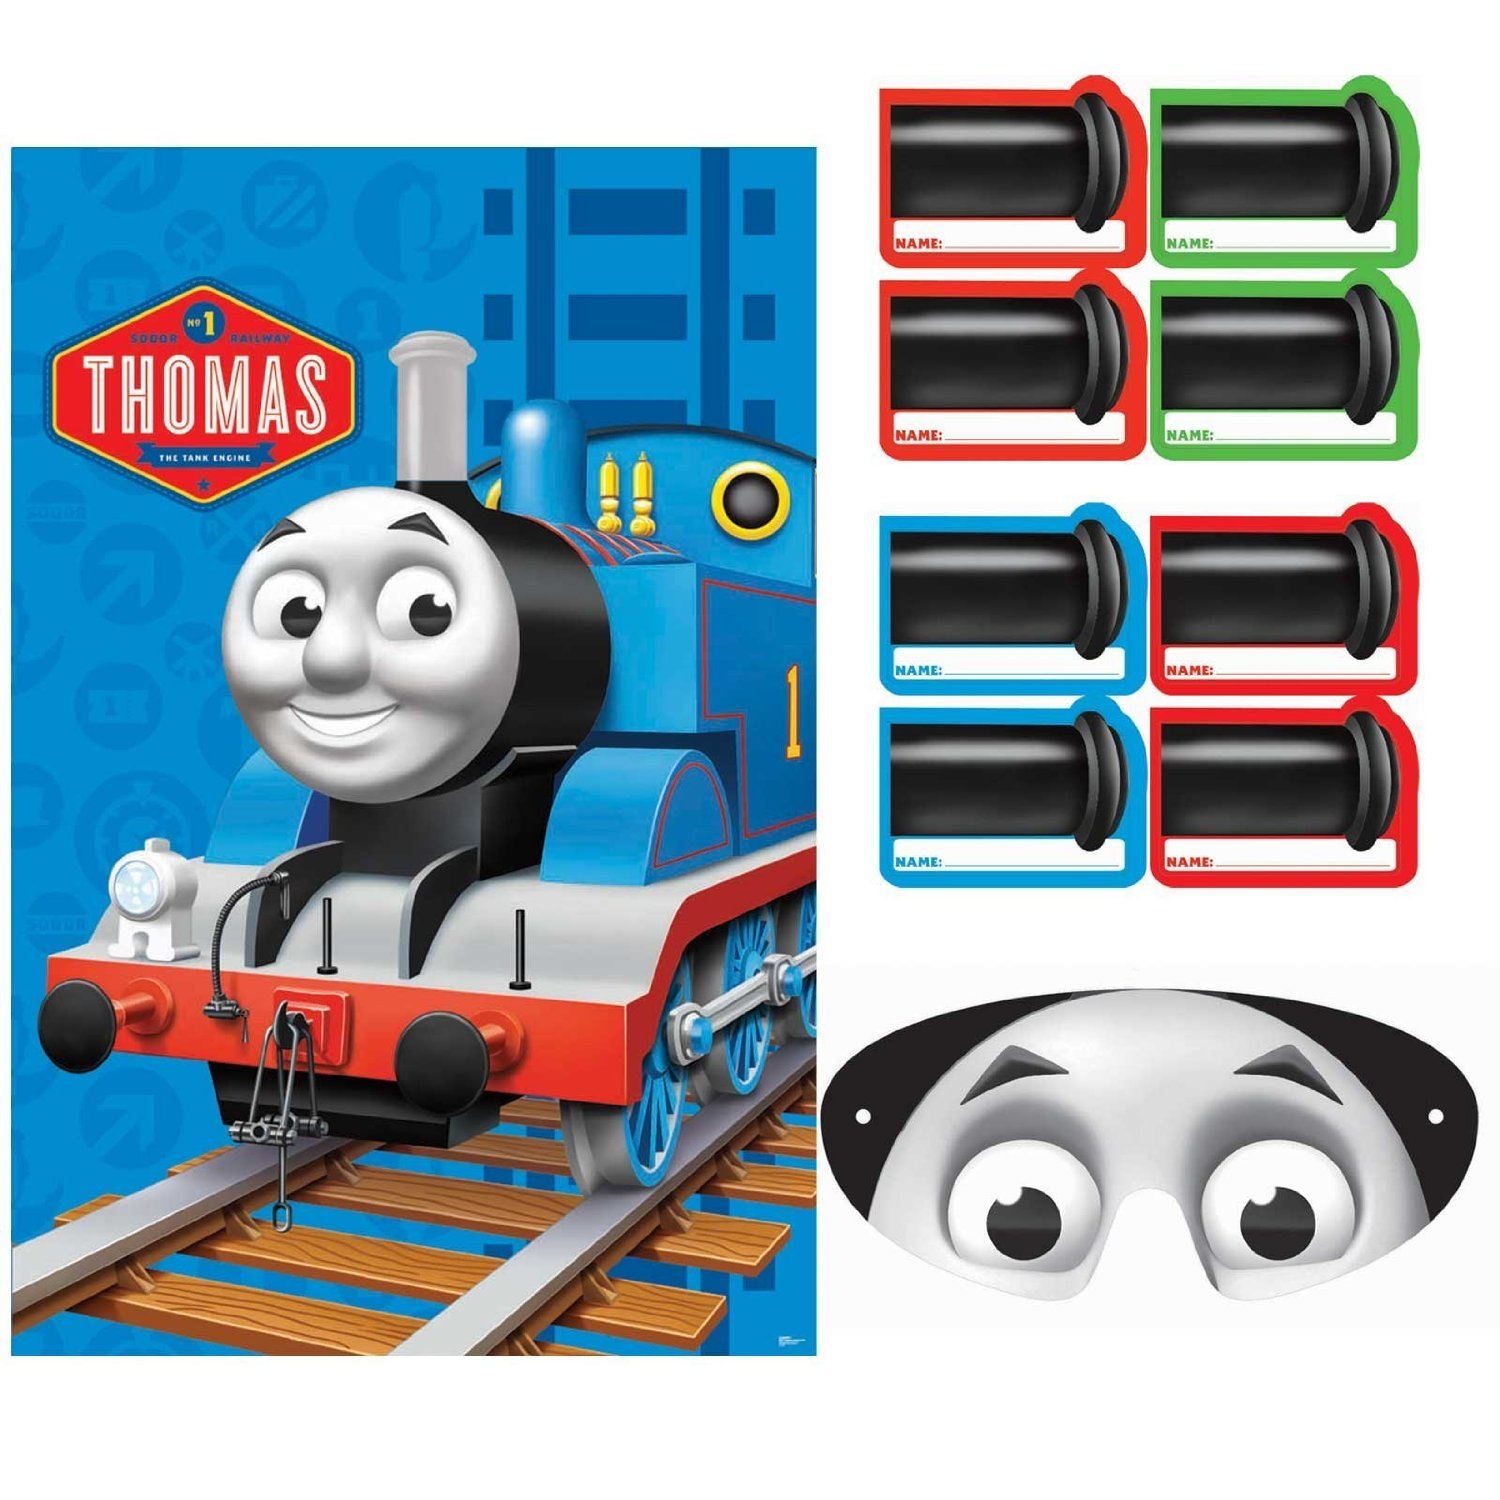 photo relating to Thomas and Friends Printable Faces titled Thomas the Coach Birthday Social gathering Game titles, Options, and printables!